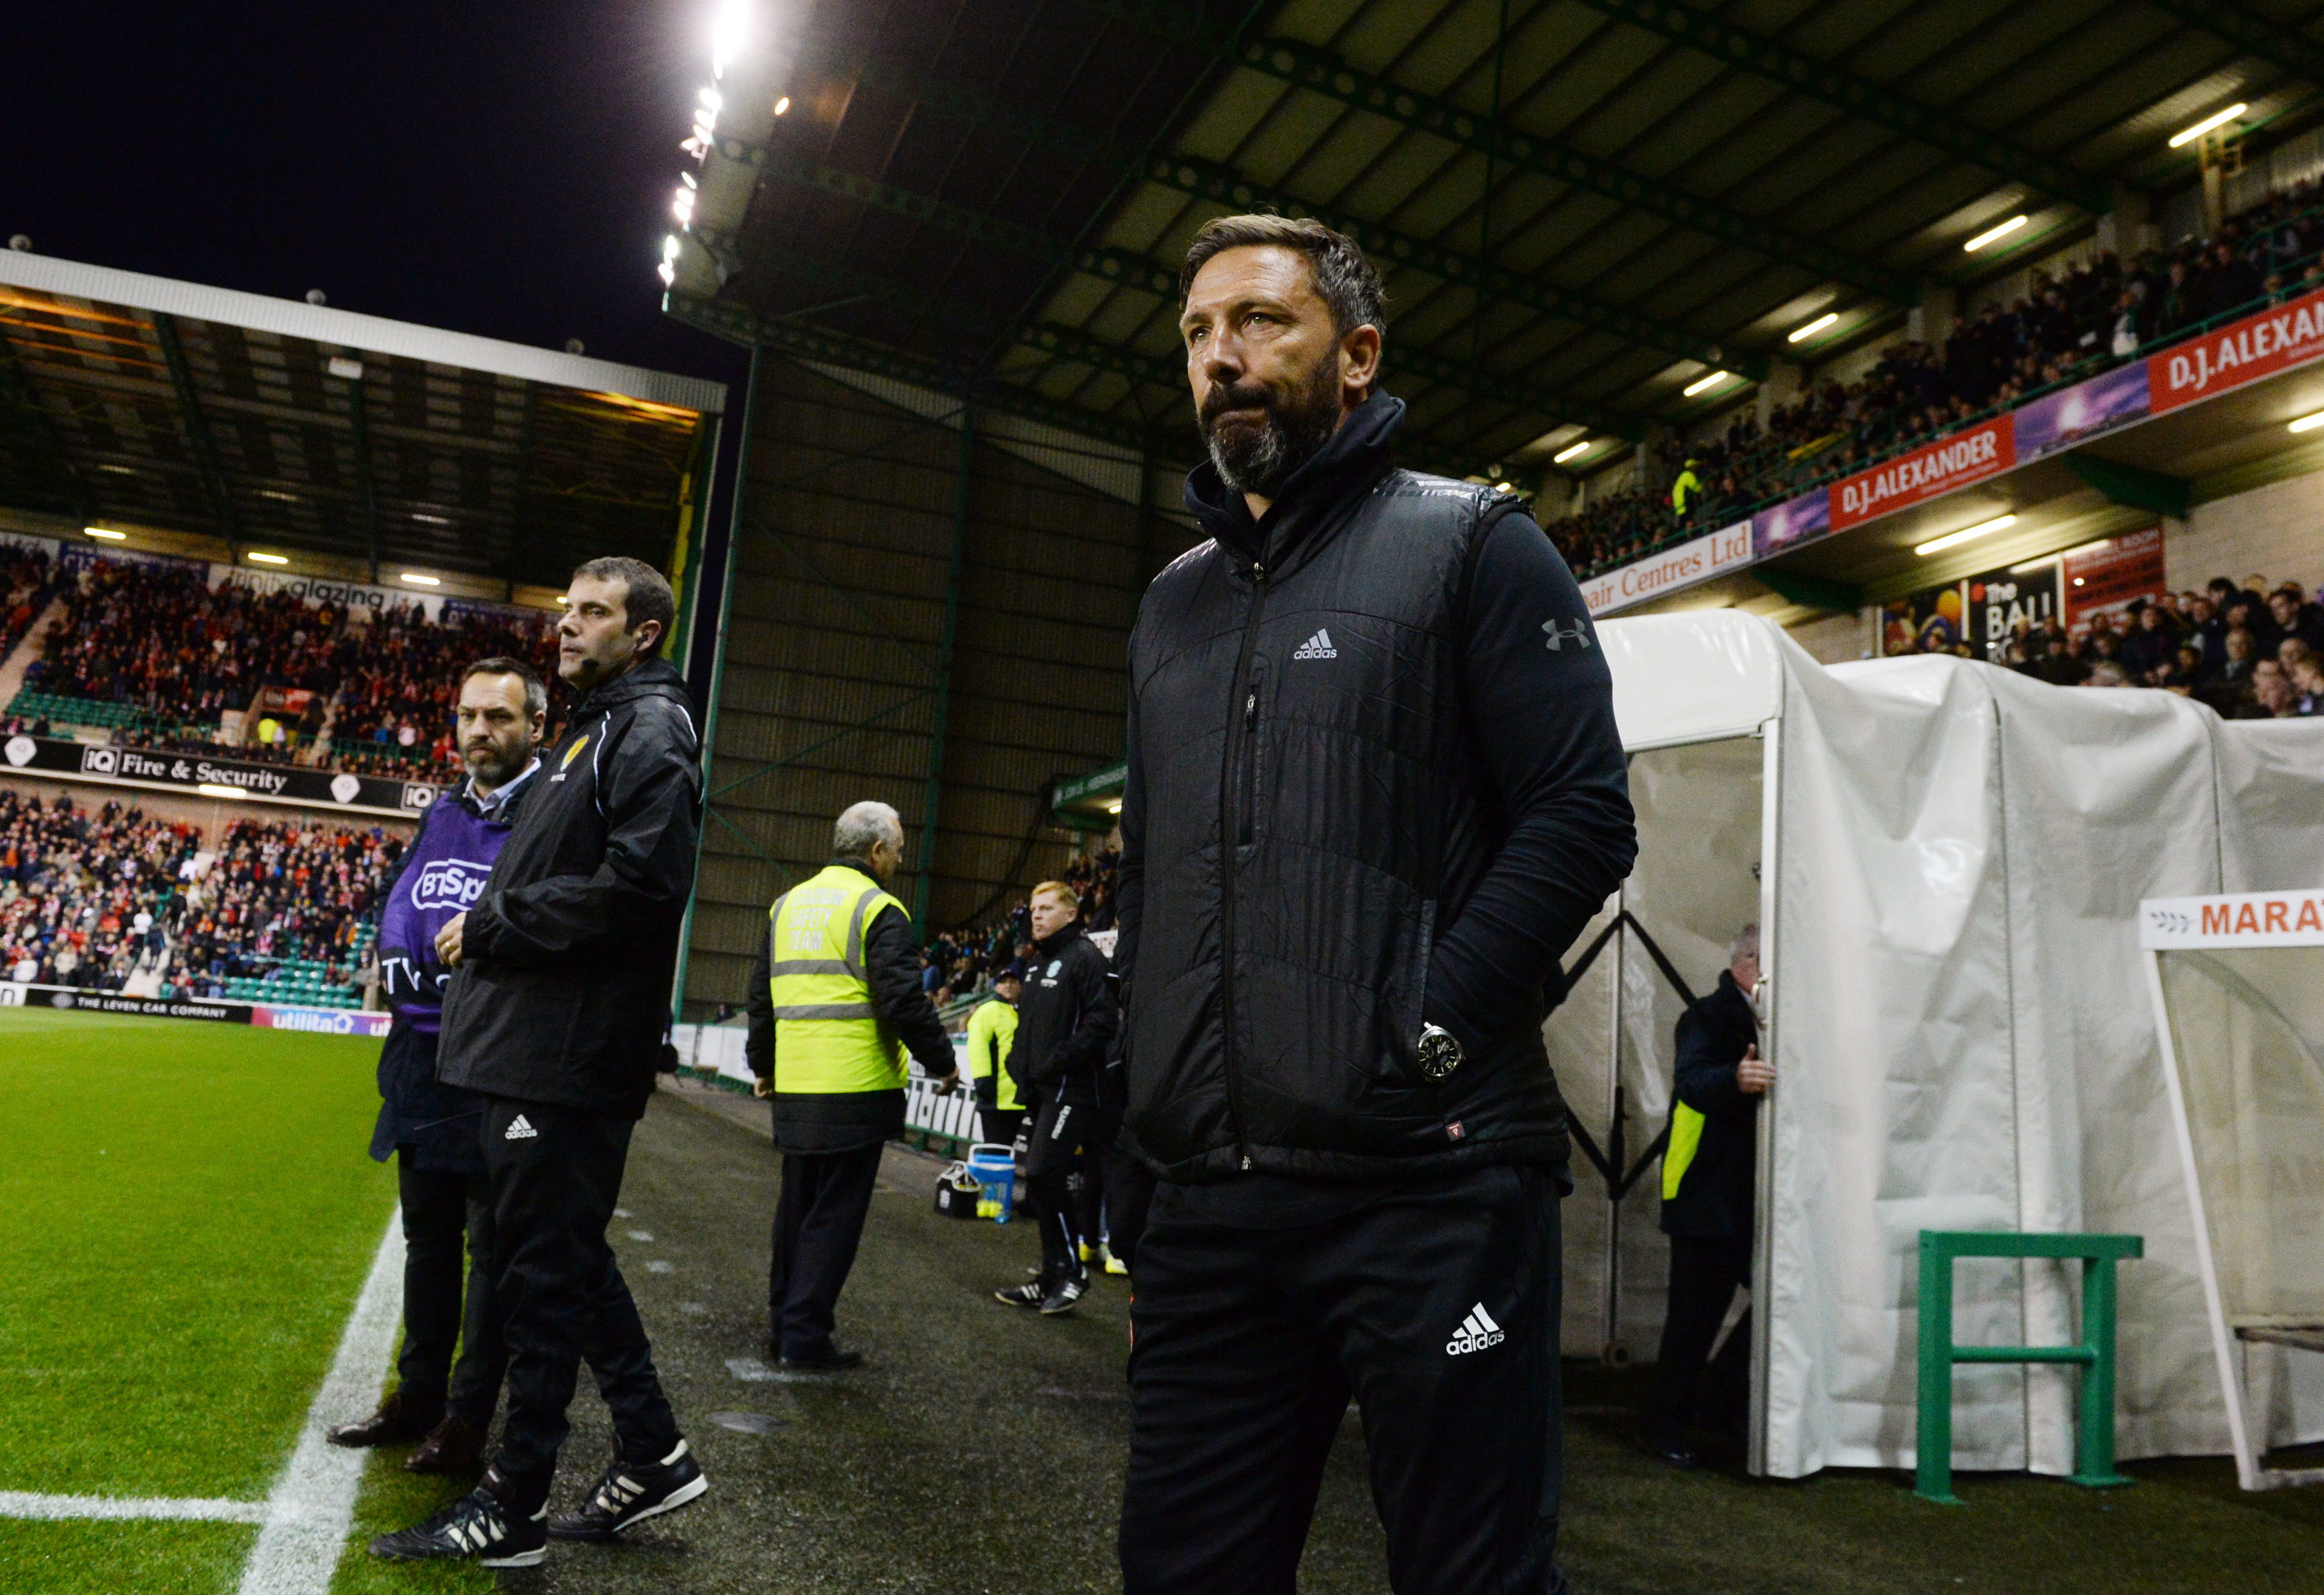 Aberdeen manager Derek McInnes believes consistency is hard to come by in an improving Scottish Premiership.